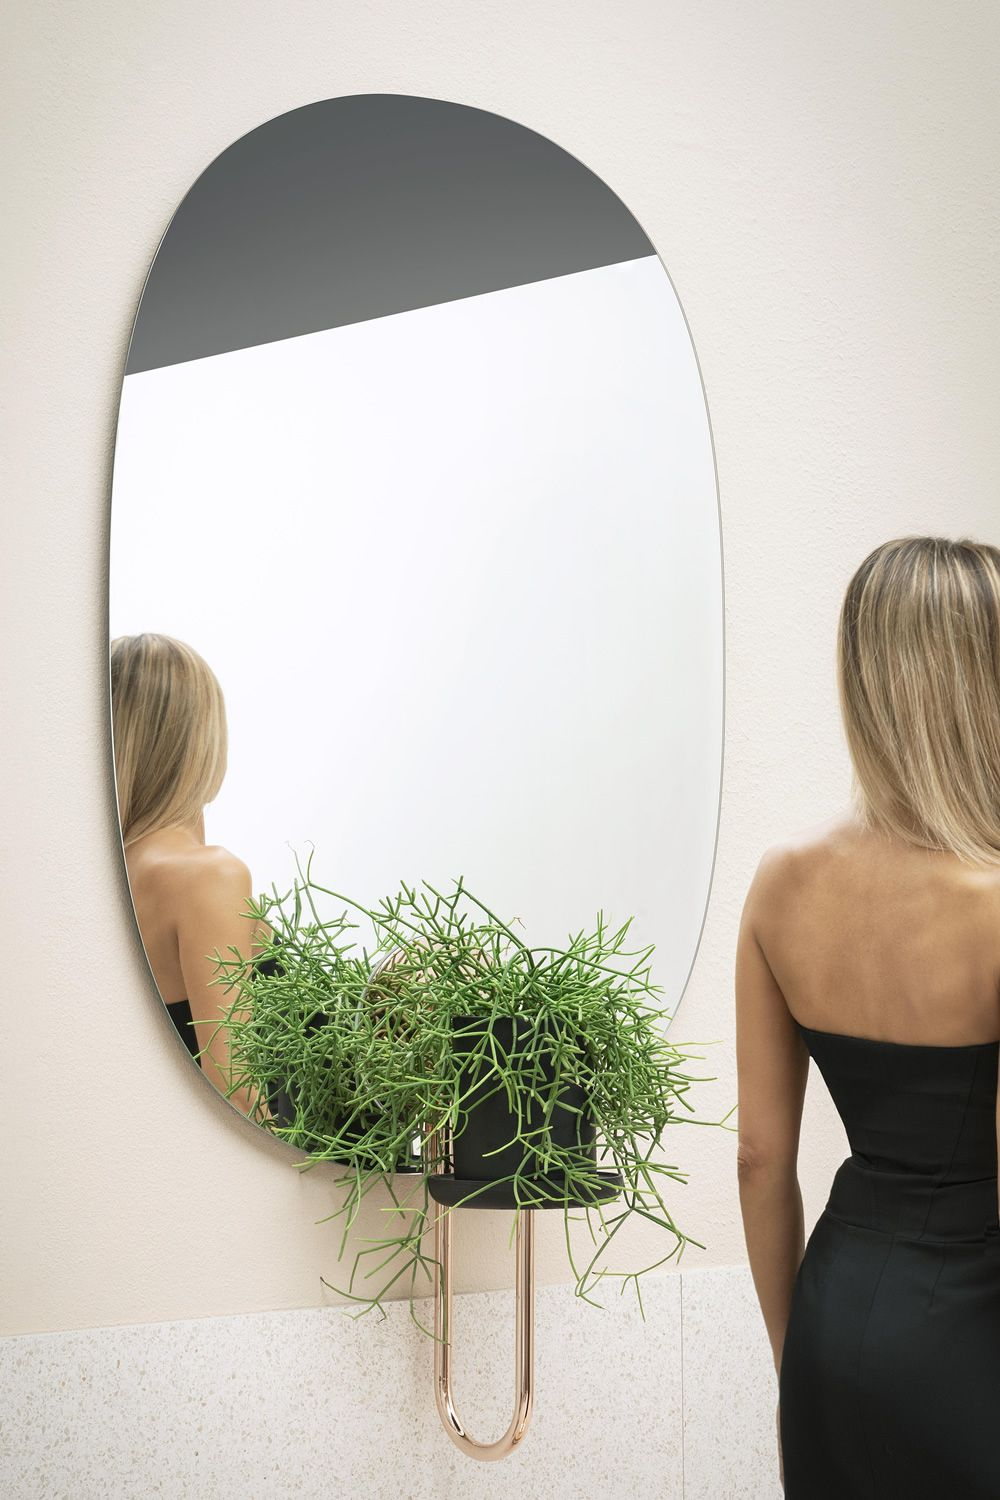 Wall flower pot with mirror